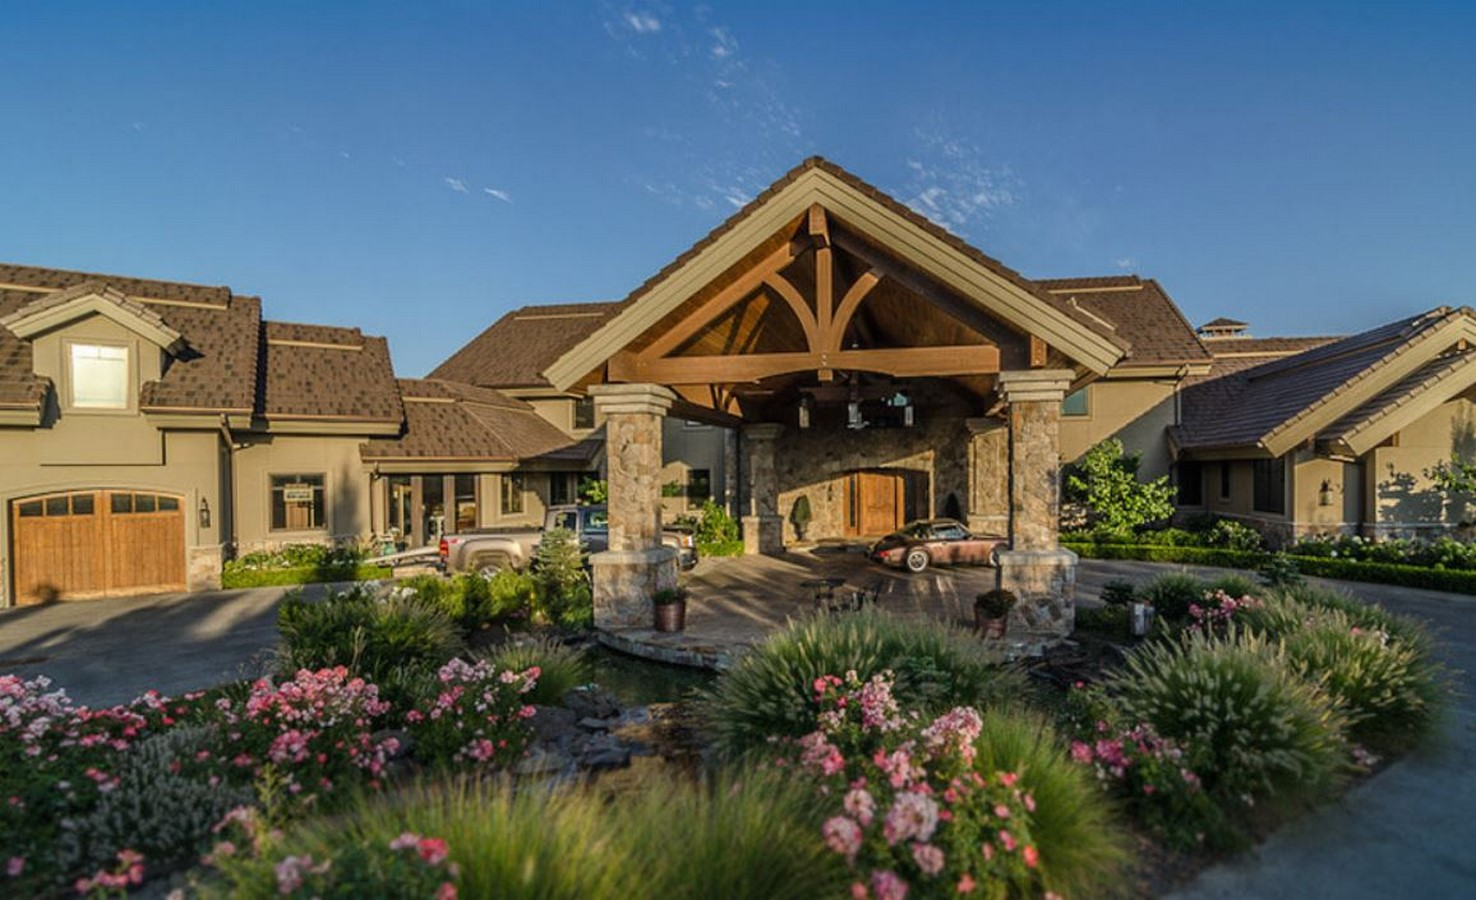 Architects in Boise City - Top 40 Architects in Boise City - Sheet10